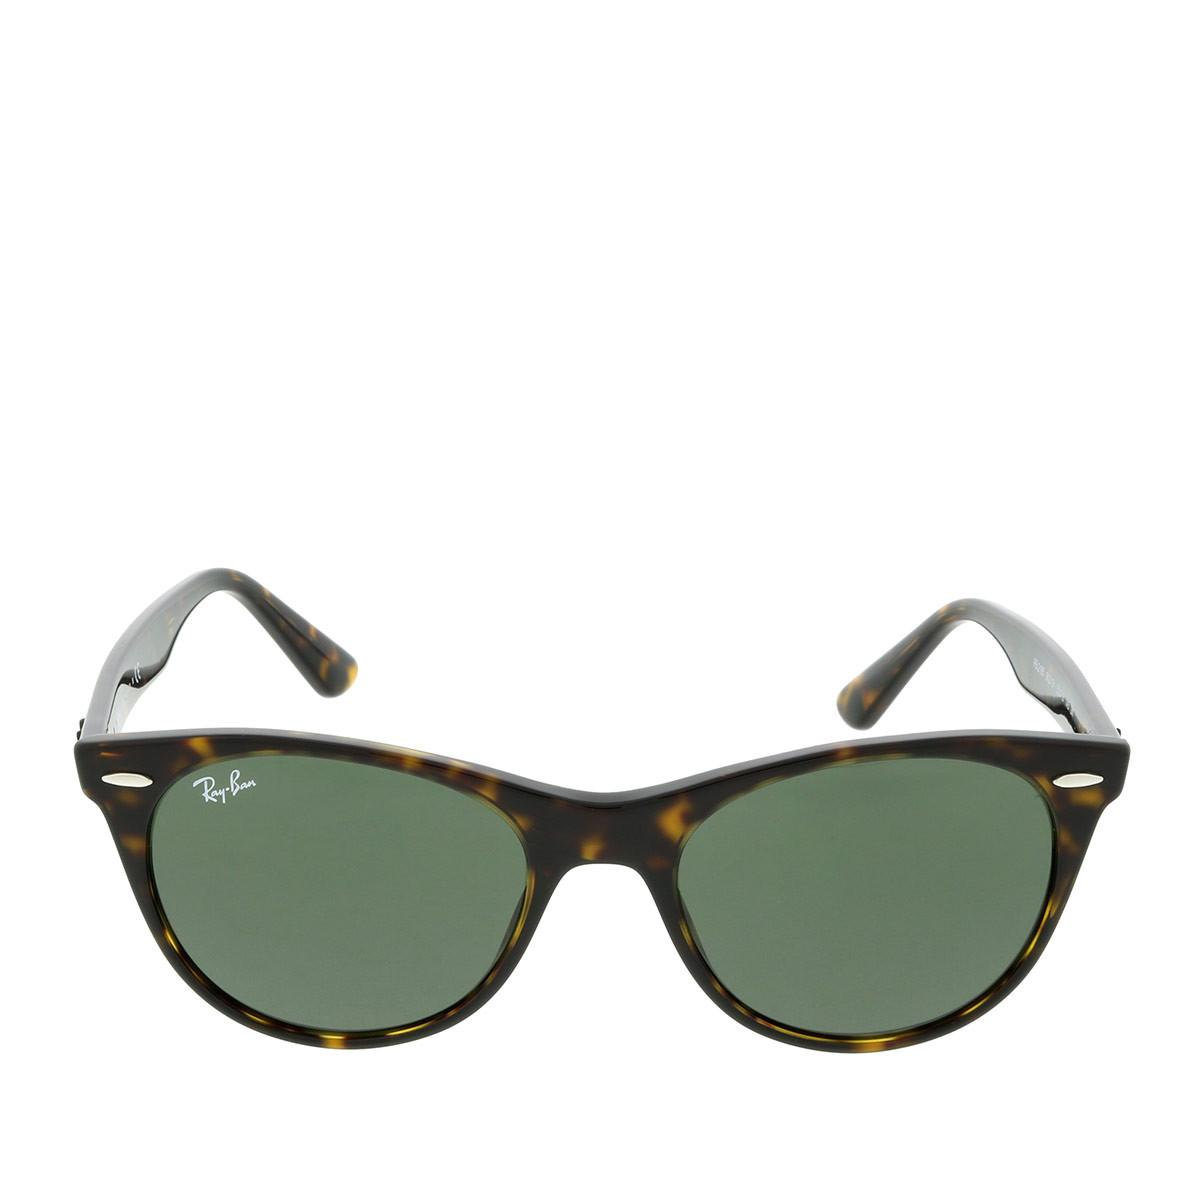 950b5e3c40 Ray-Ban Rb 0rb2185 52 902 31 - Lyst